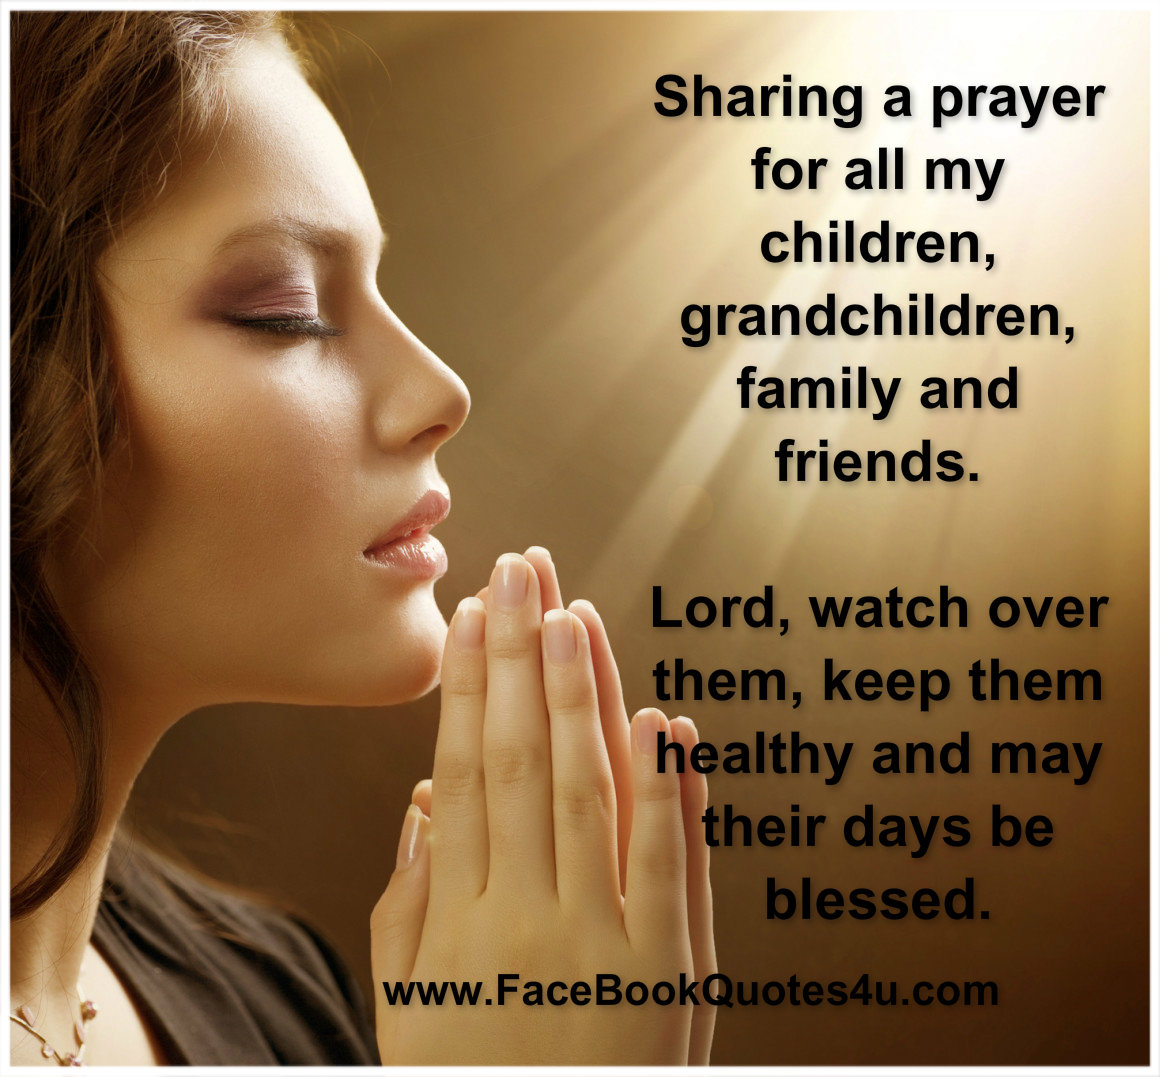 Prayer Quotes For Friends And Family Twitter thumbnail